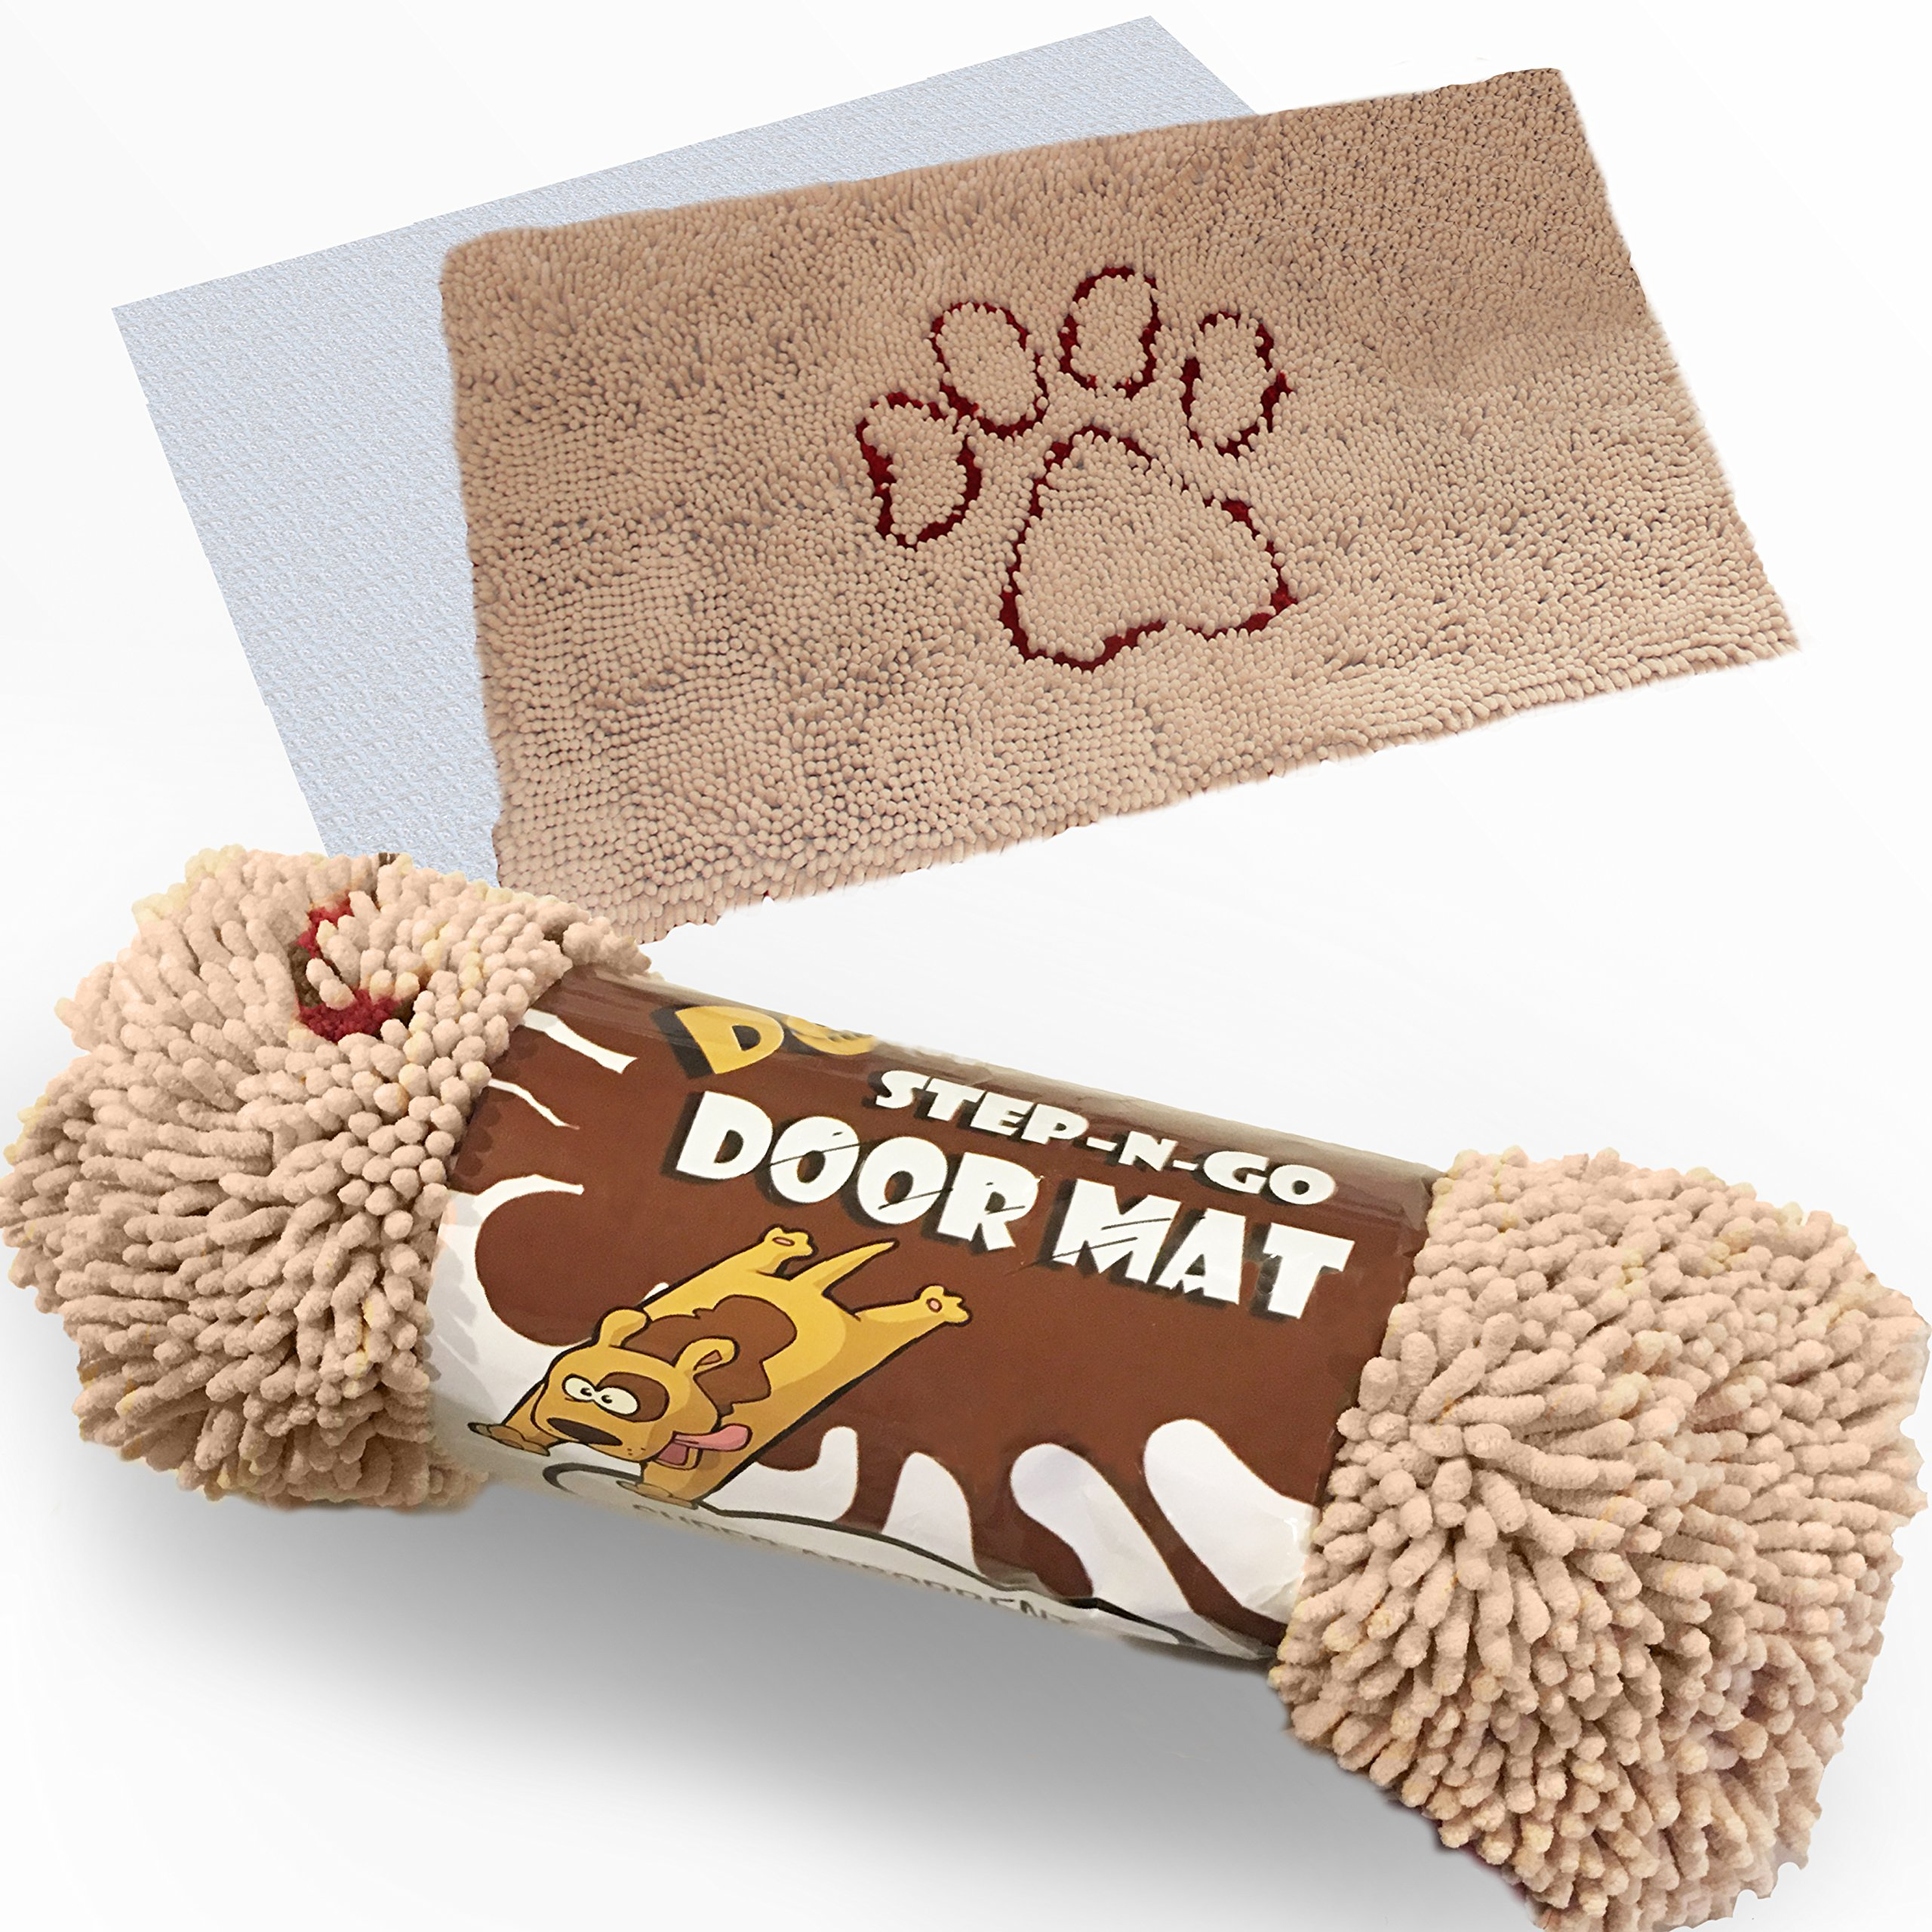 iPrimio XL Extra Thick Micro Fiber Pet Dog Door Mat - Super Absorbent. Includes Water Proof Liner - Size 36'' X 26'' Exclusive Khaki Color